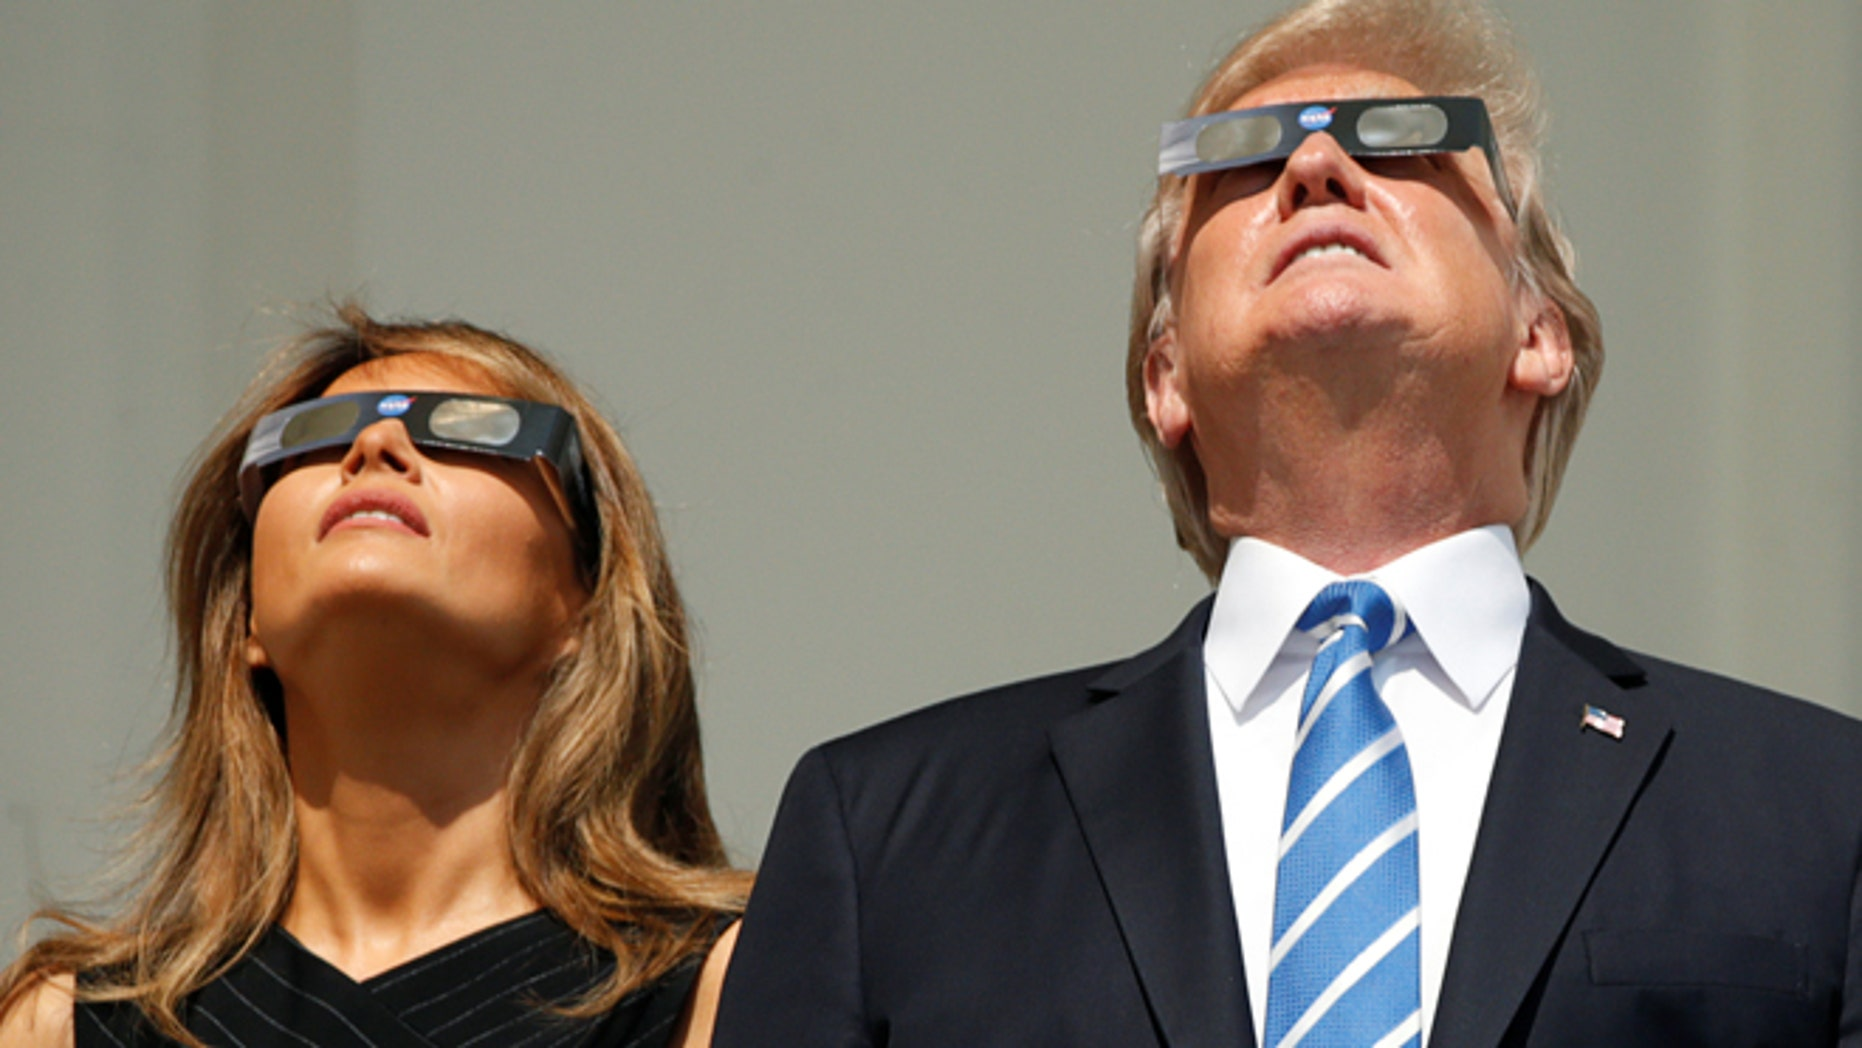 U.S. President Donald Trump and Melania Trump watch the solar eclipse from the White House in Washington, U.S., August 21, 2017.  REUTERS/Kevin Lamarque - RTS1CPN2